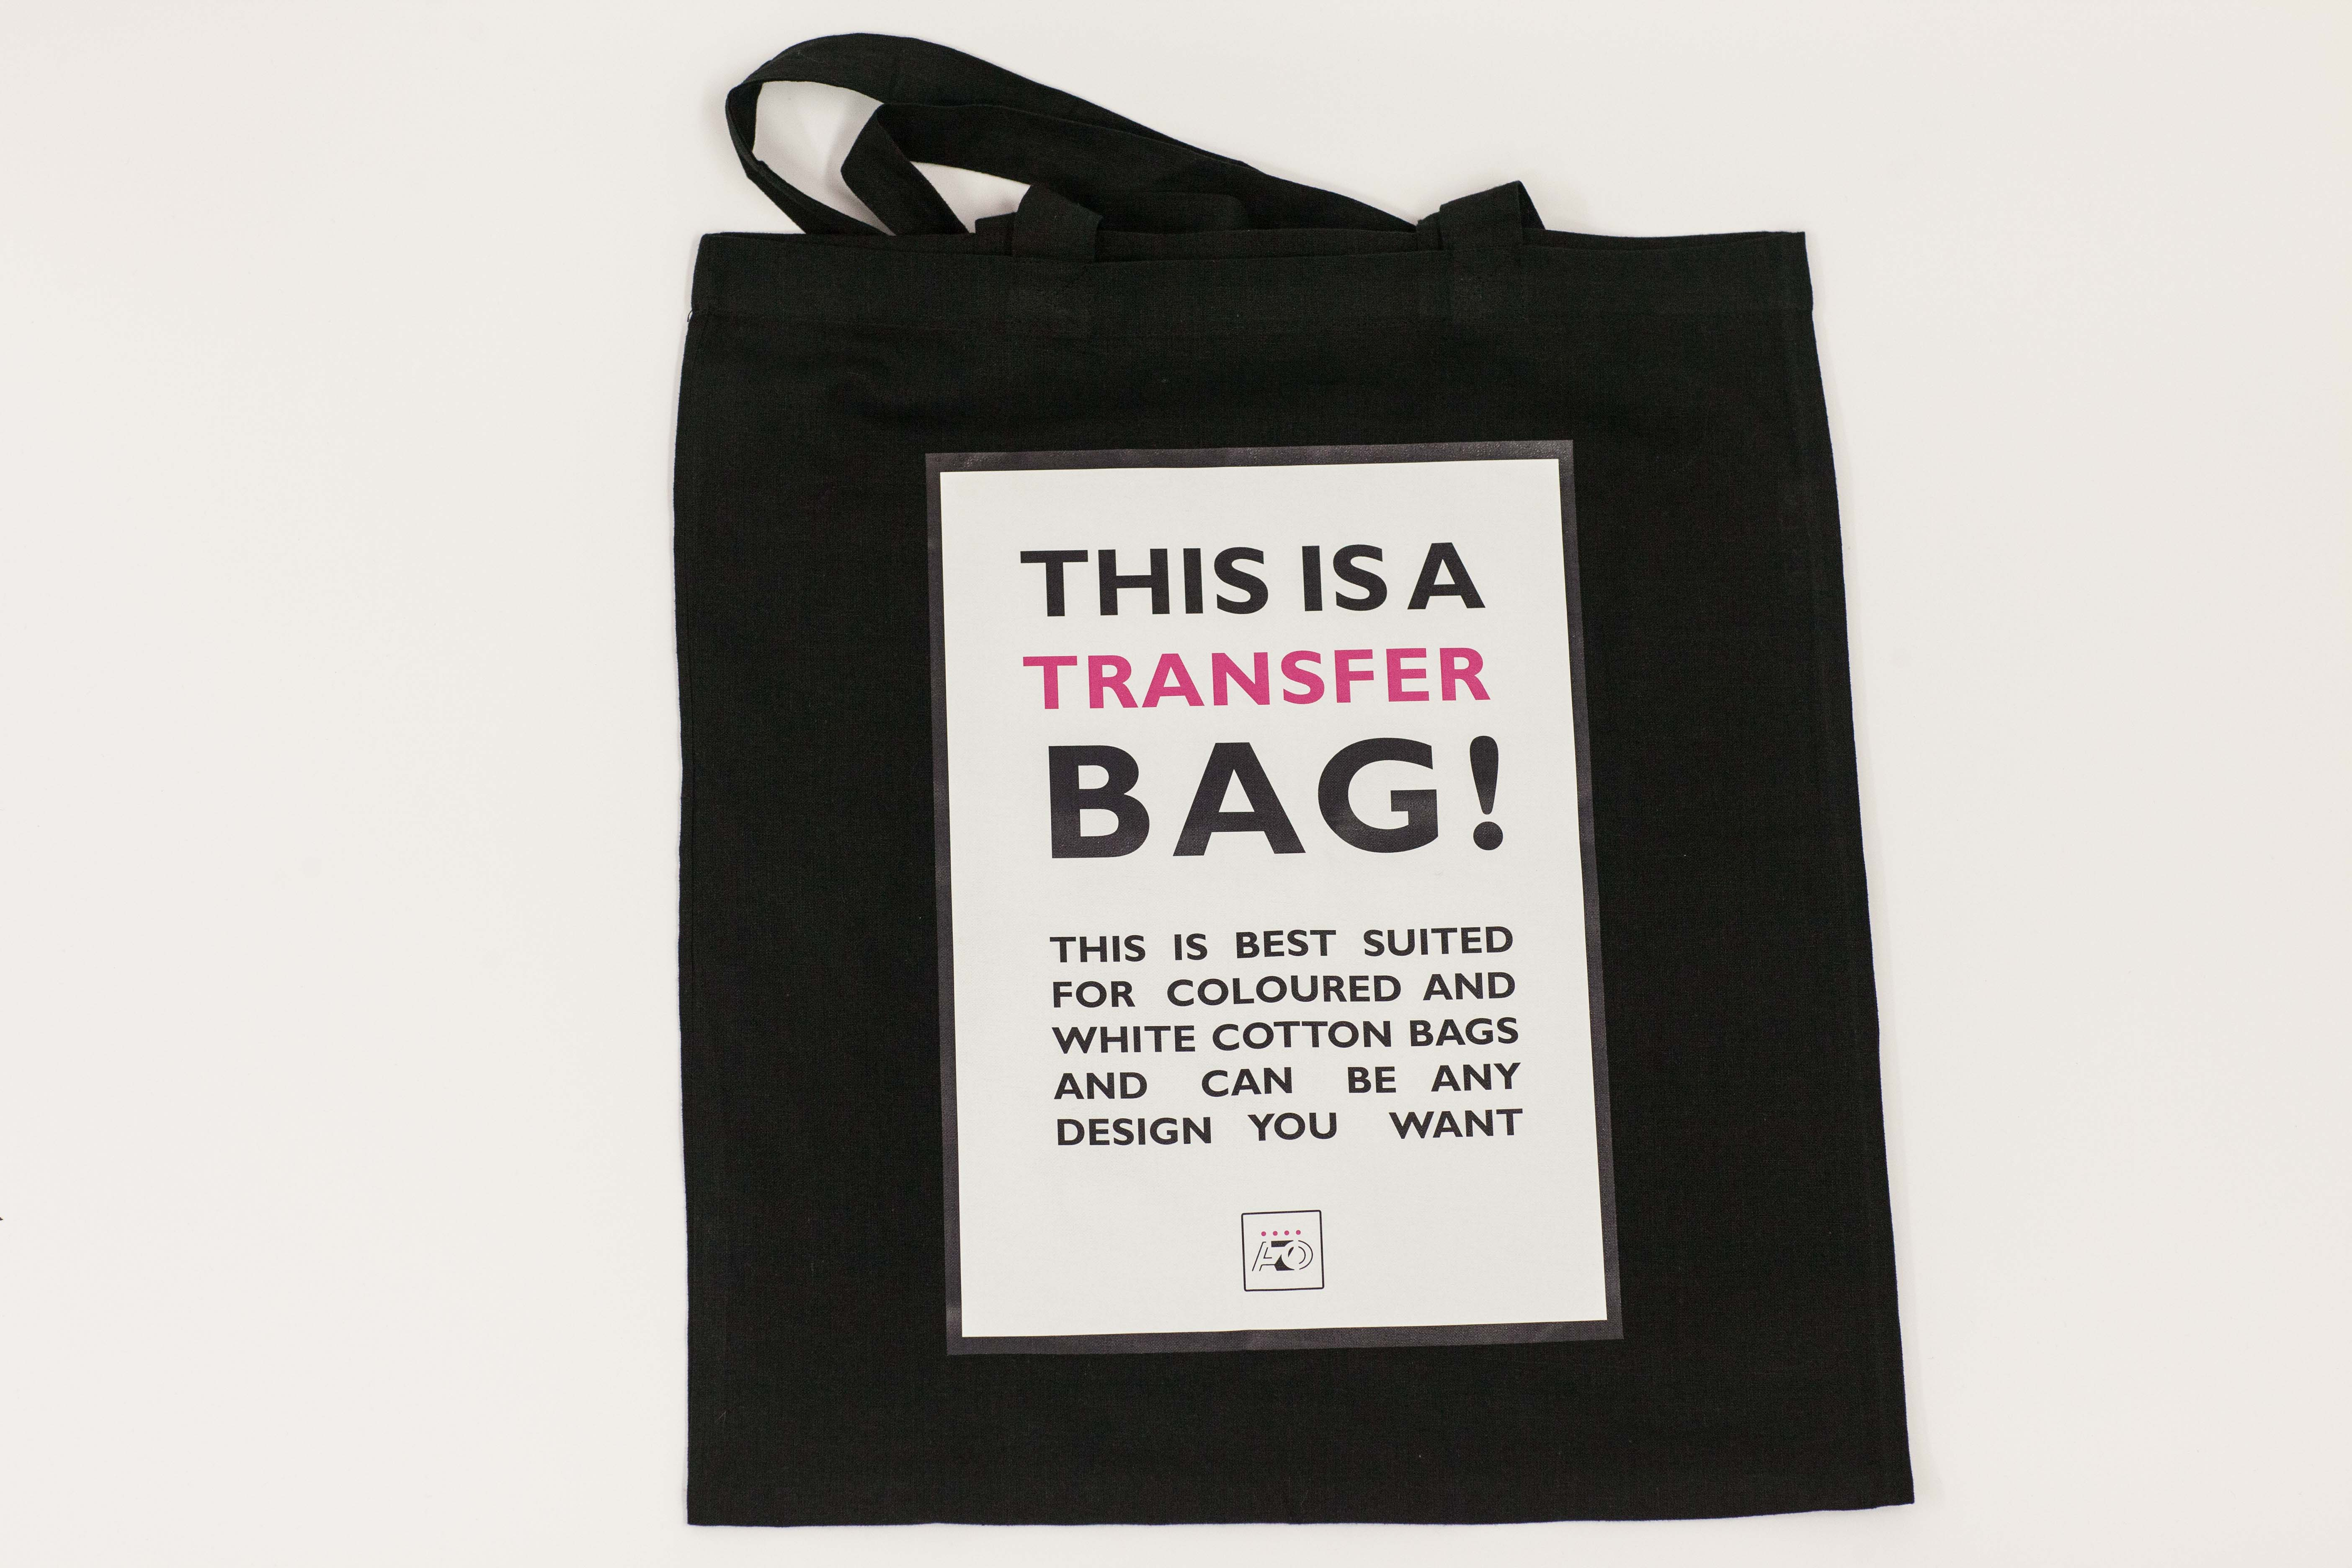 Black bags with a transfer process